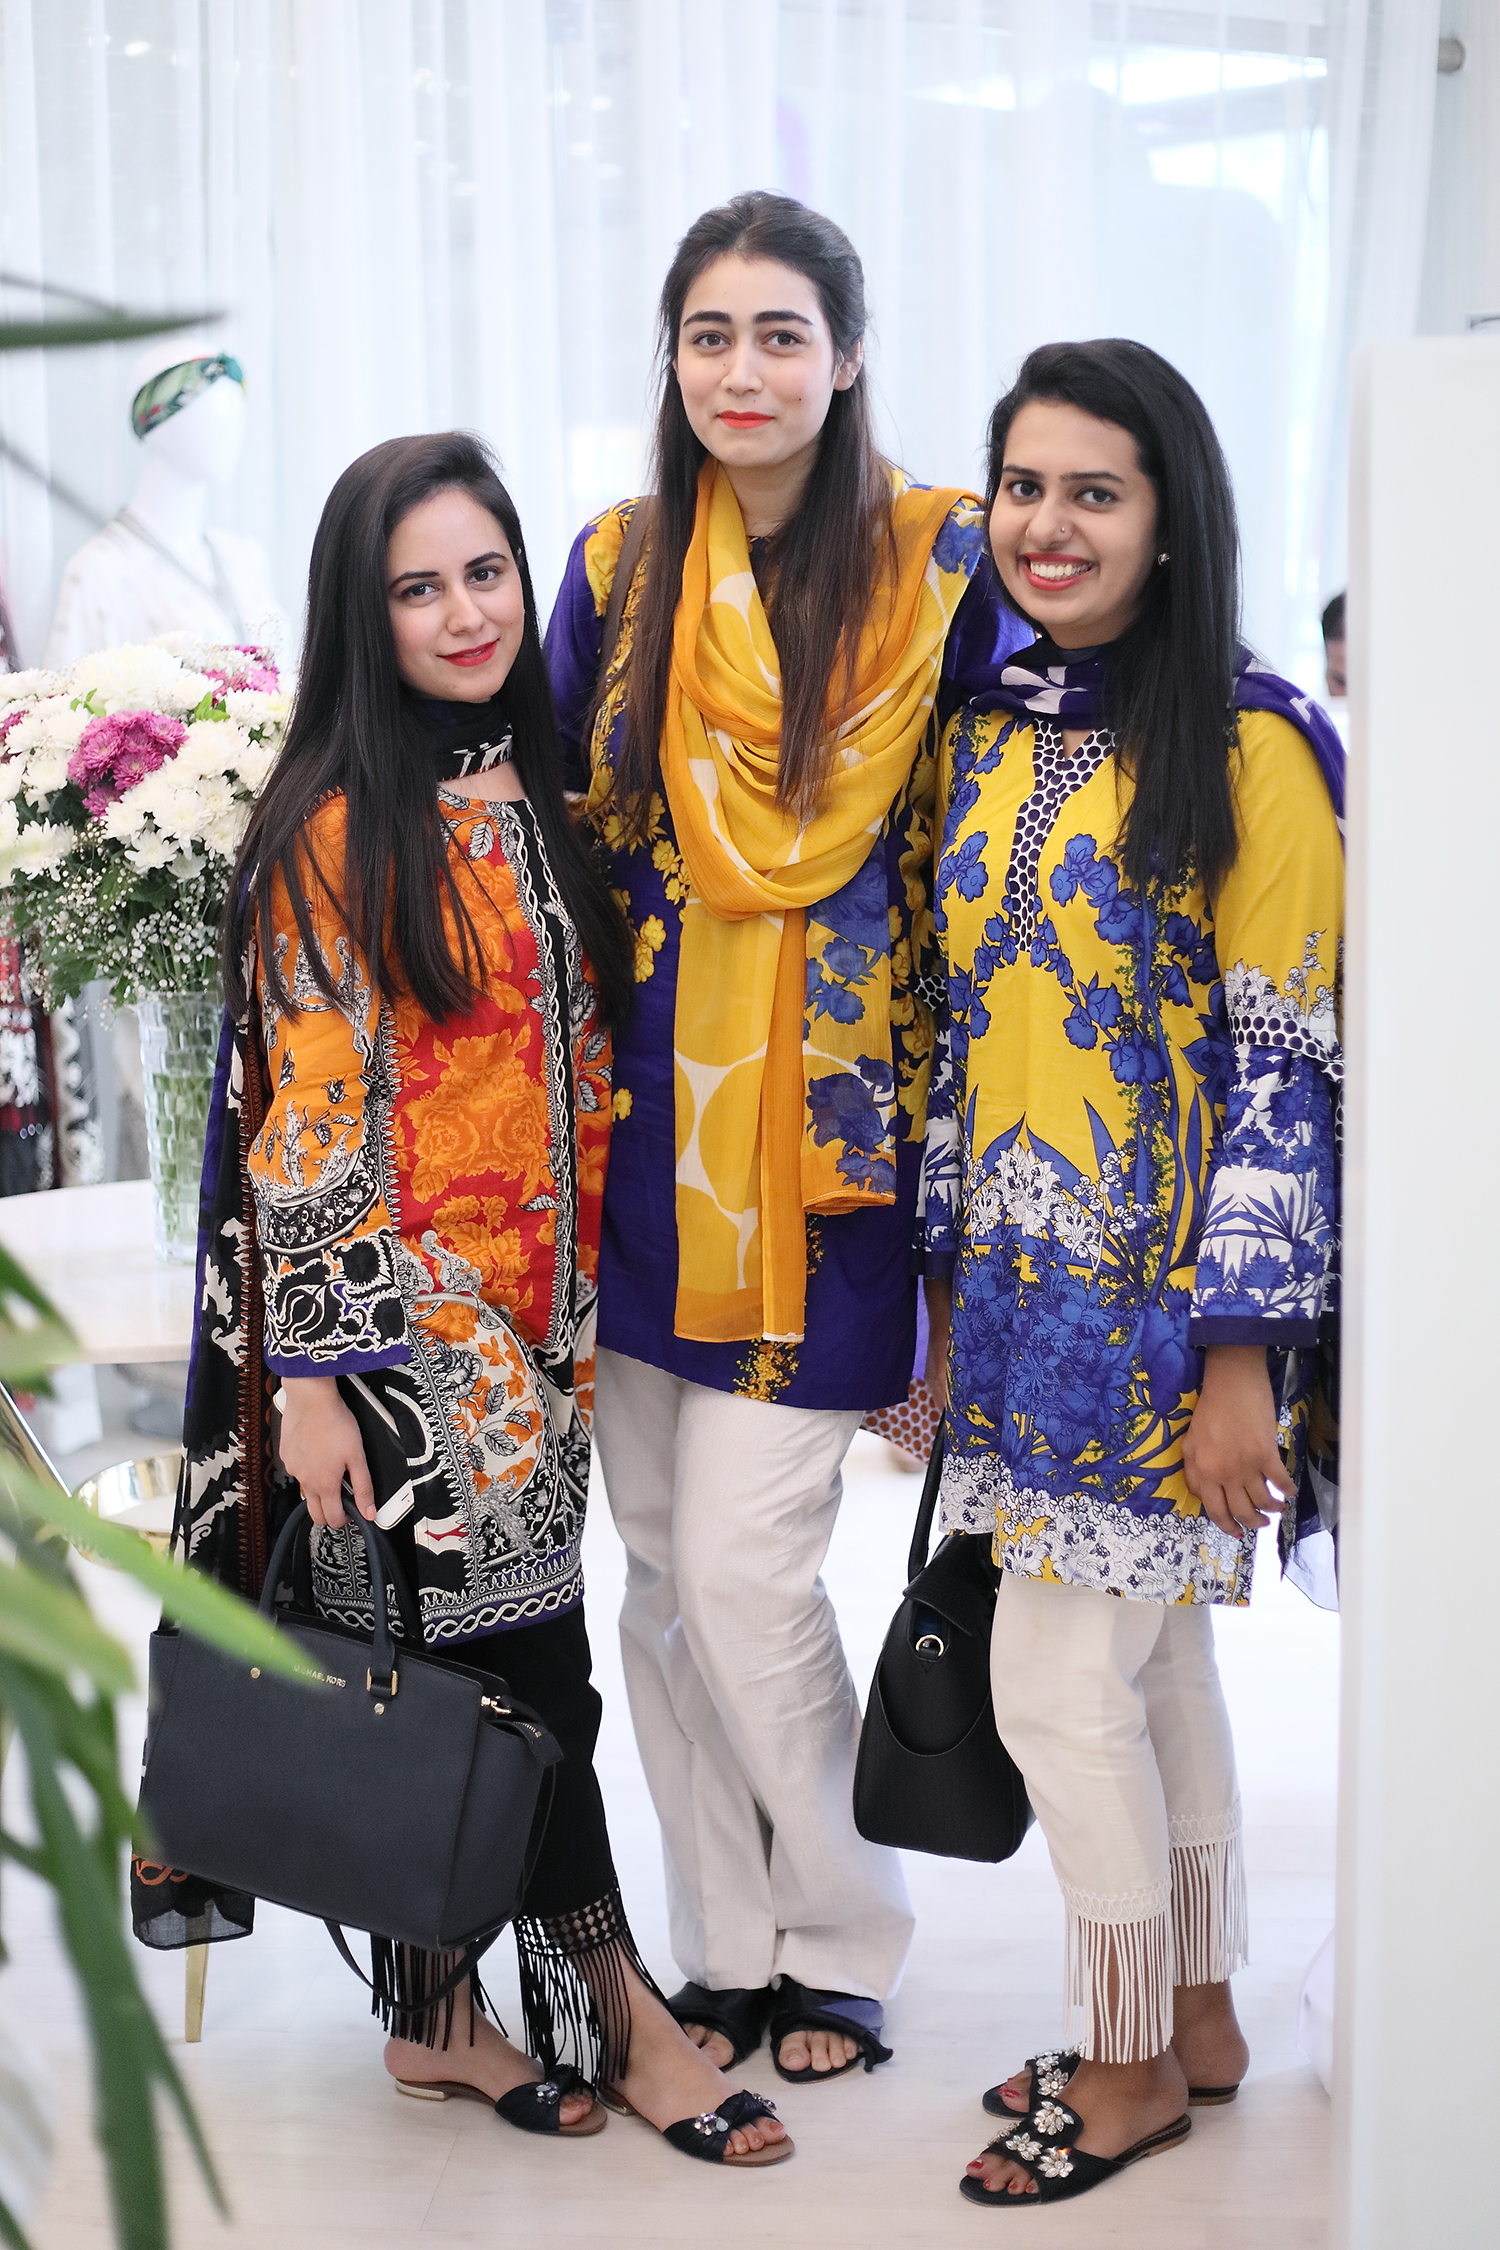 Najia, Gul and Rida